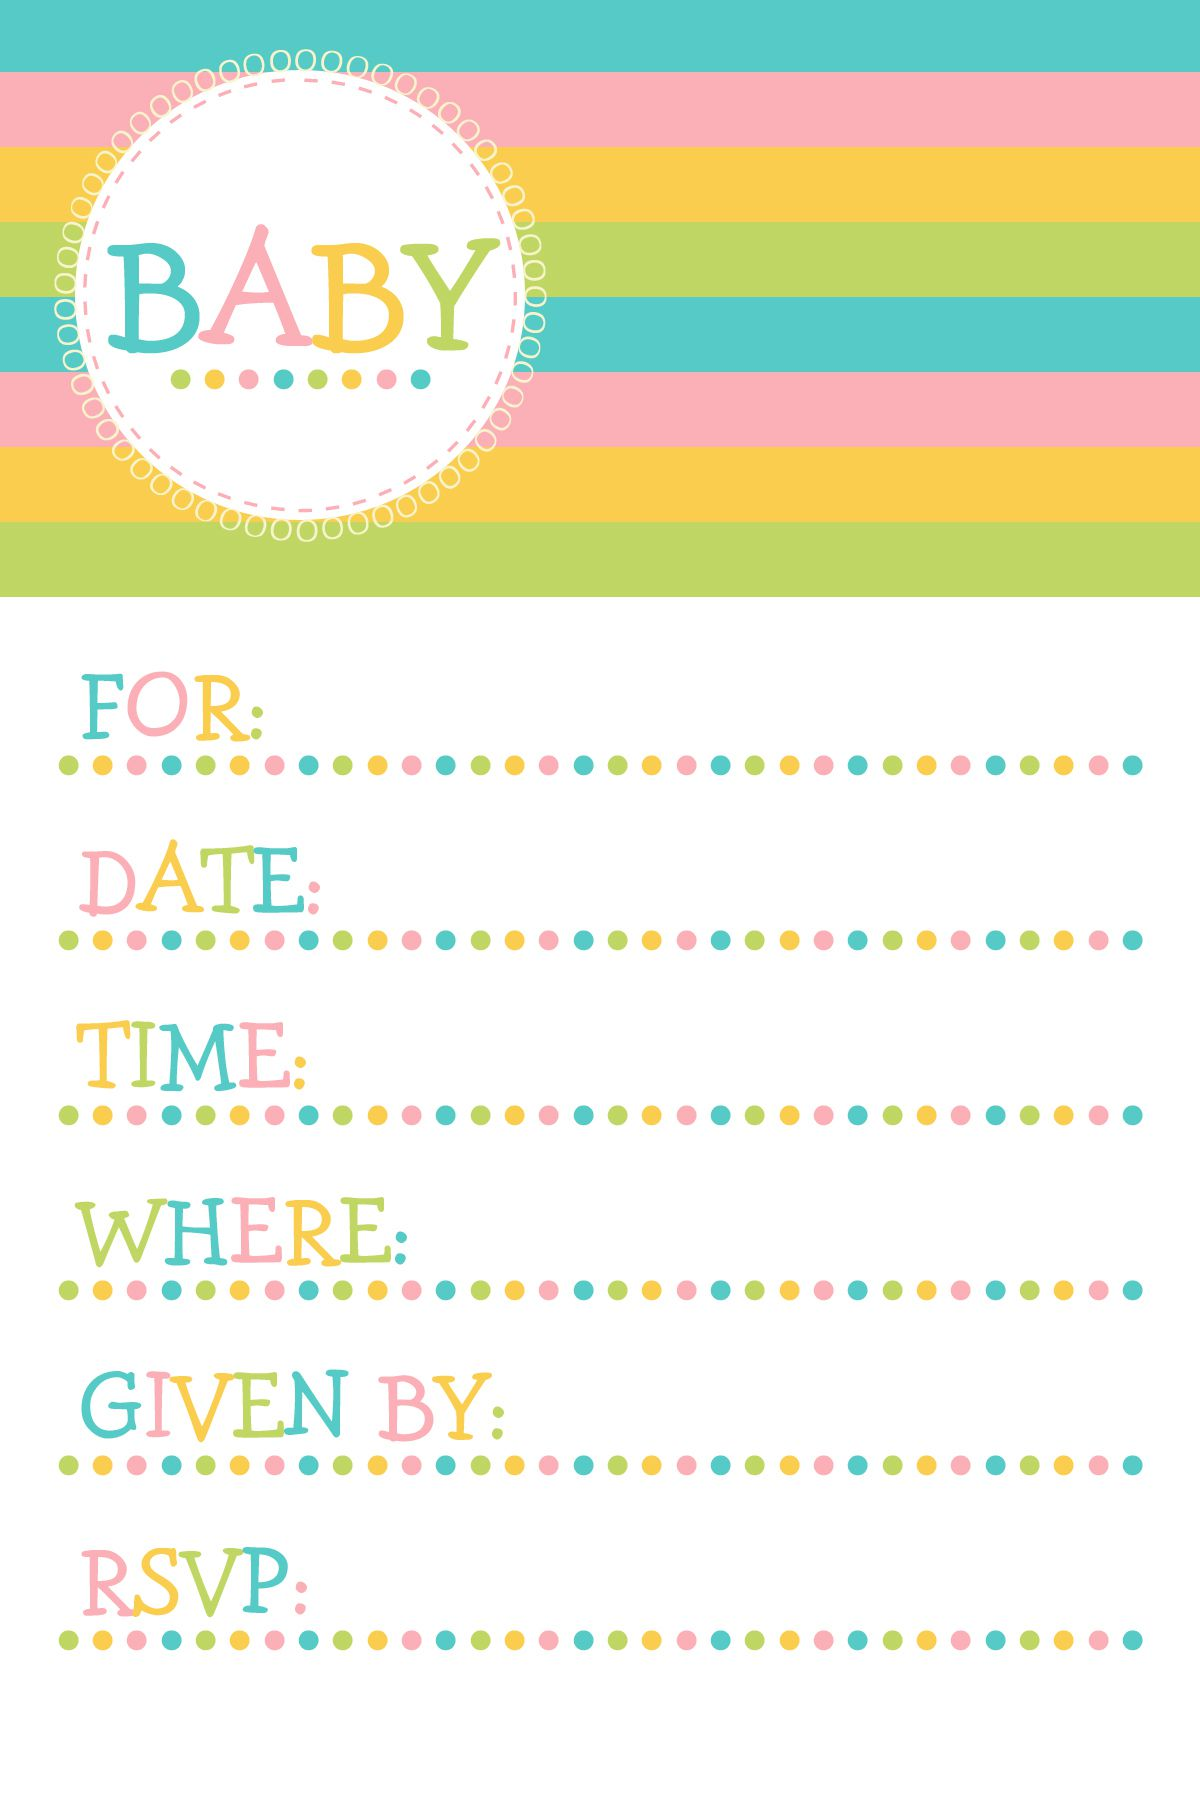 design invitation shower ideas com of baby invitations with awesome zoo save theruntime for blue downloado card fresh safari awesom her